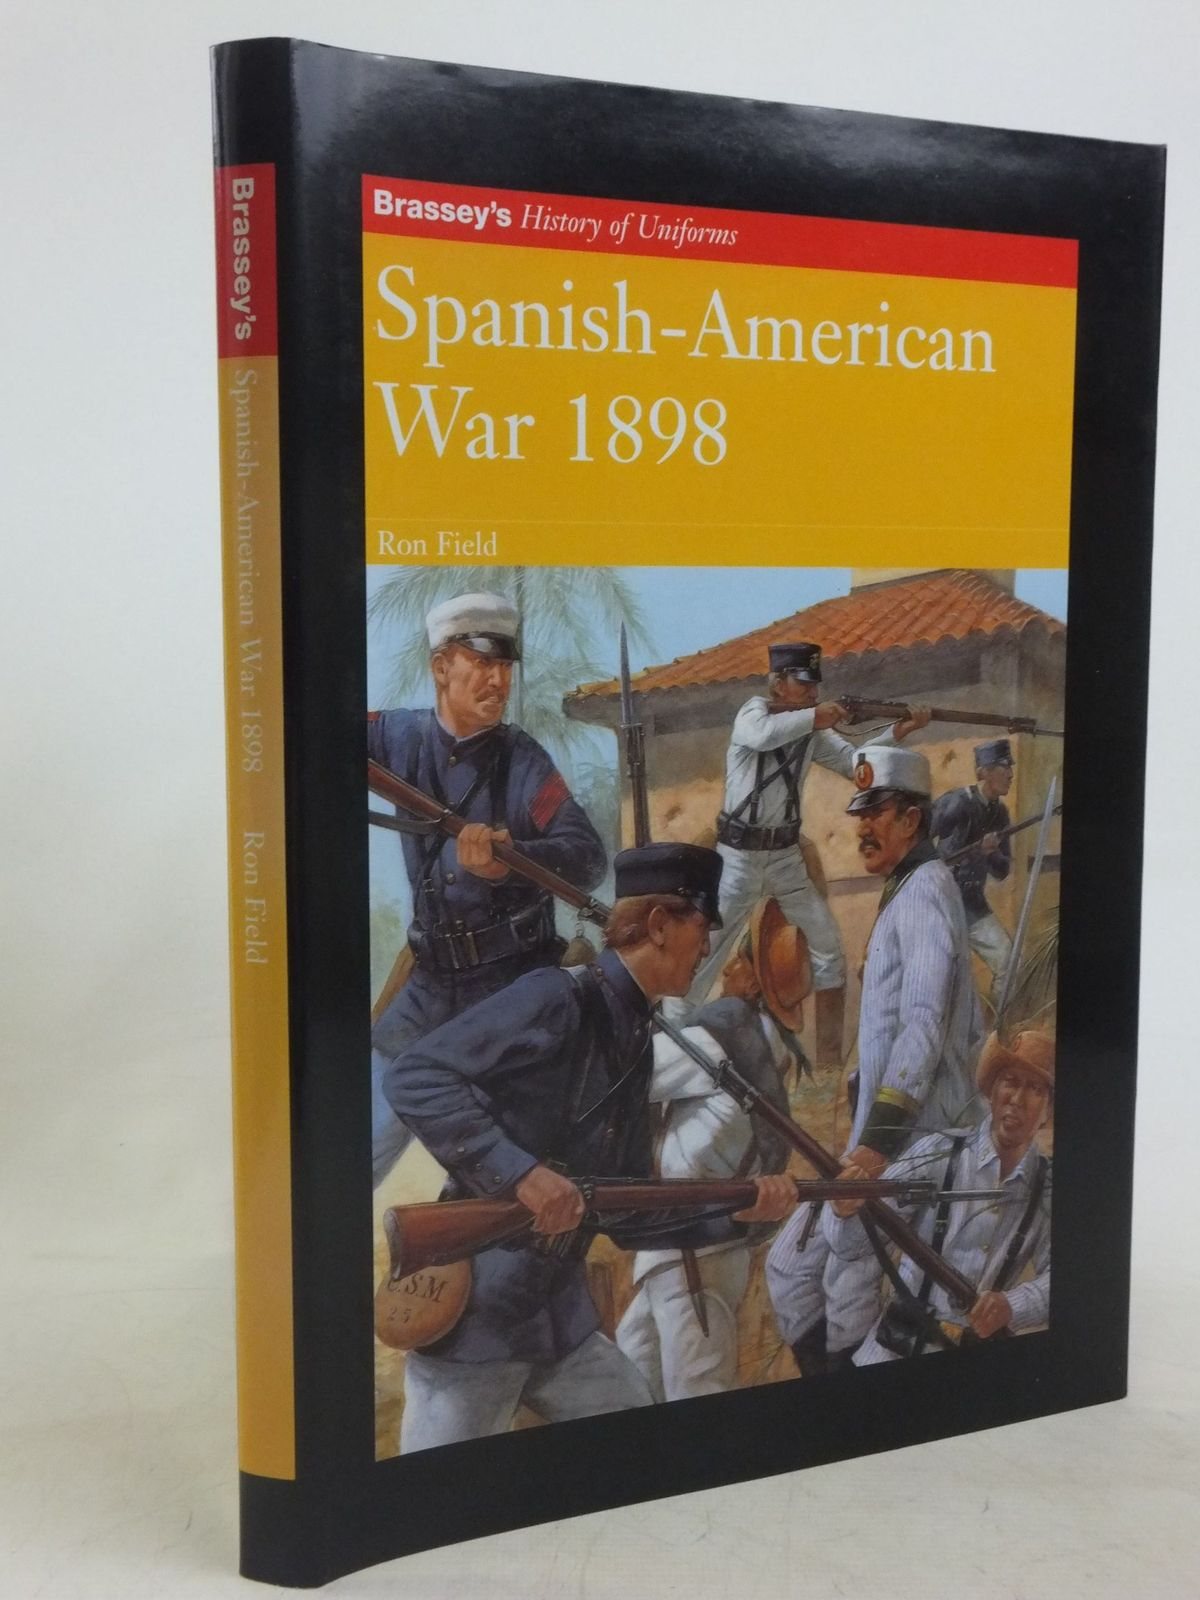 Photo of SPANISH-AMERICAN WAR 1898 written by Field, Ron illustrated by Hook, Richard published by Brassey's (STOCK CODE: 1712533)  for sale by Stella & Rose's Books